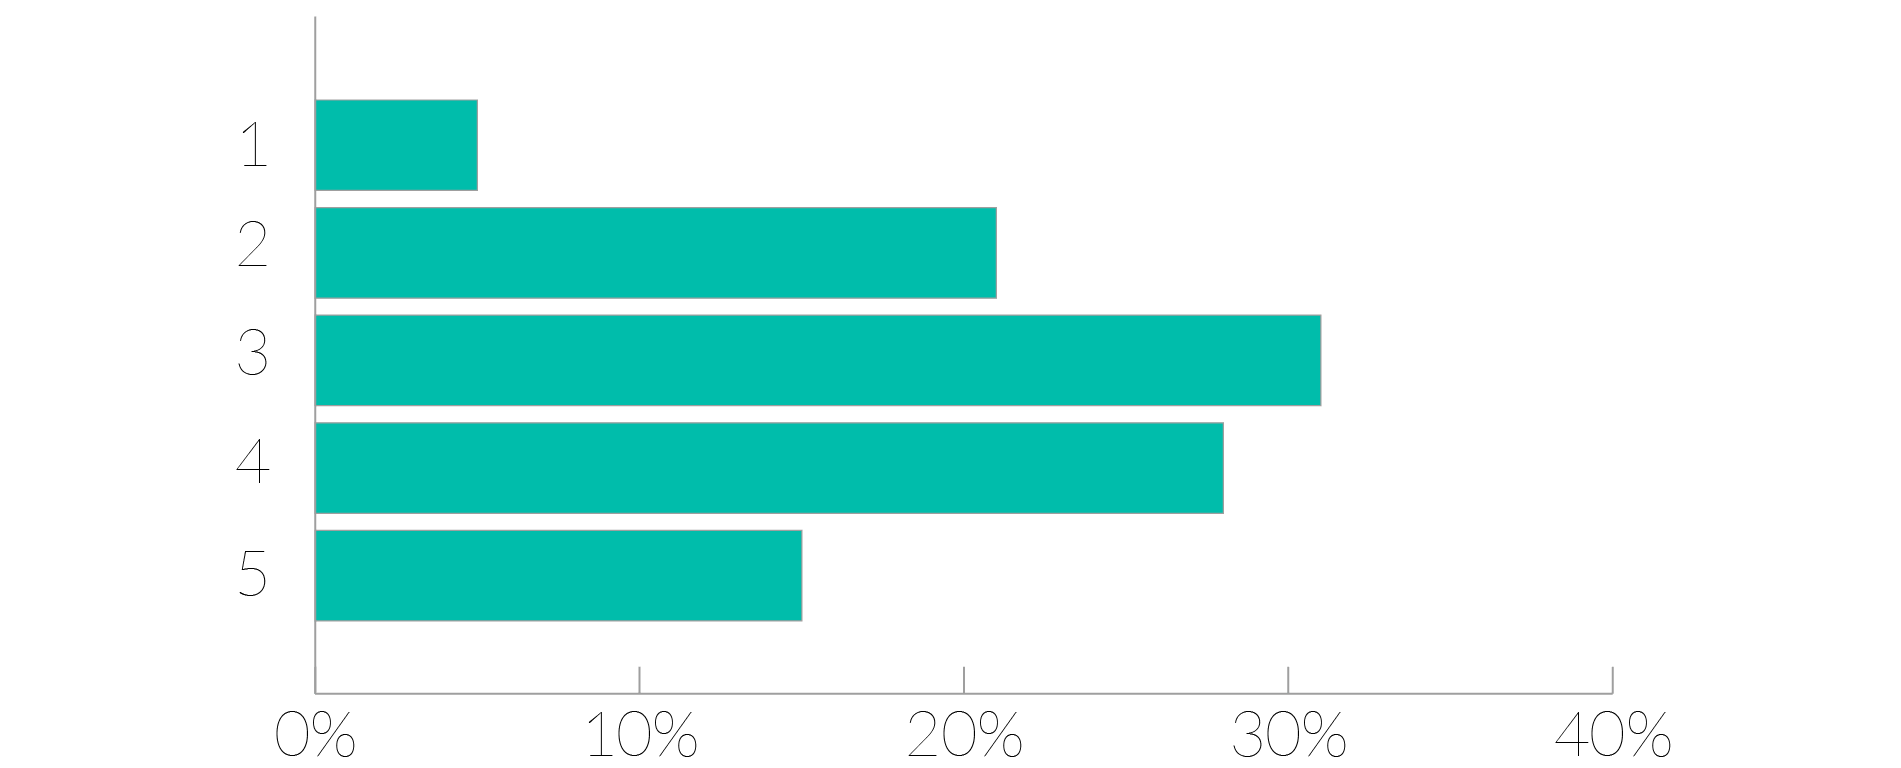 How likely are you to recommend Morningscore to a freind? - bar graph